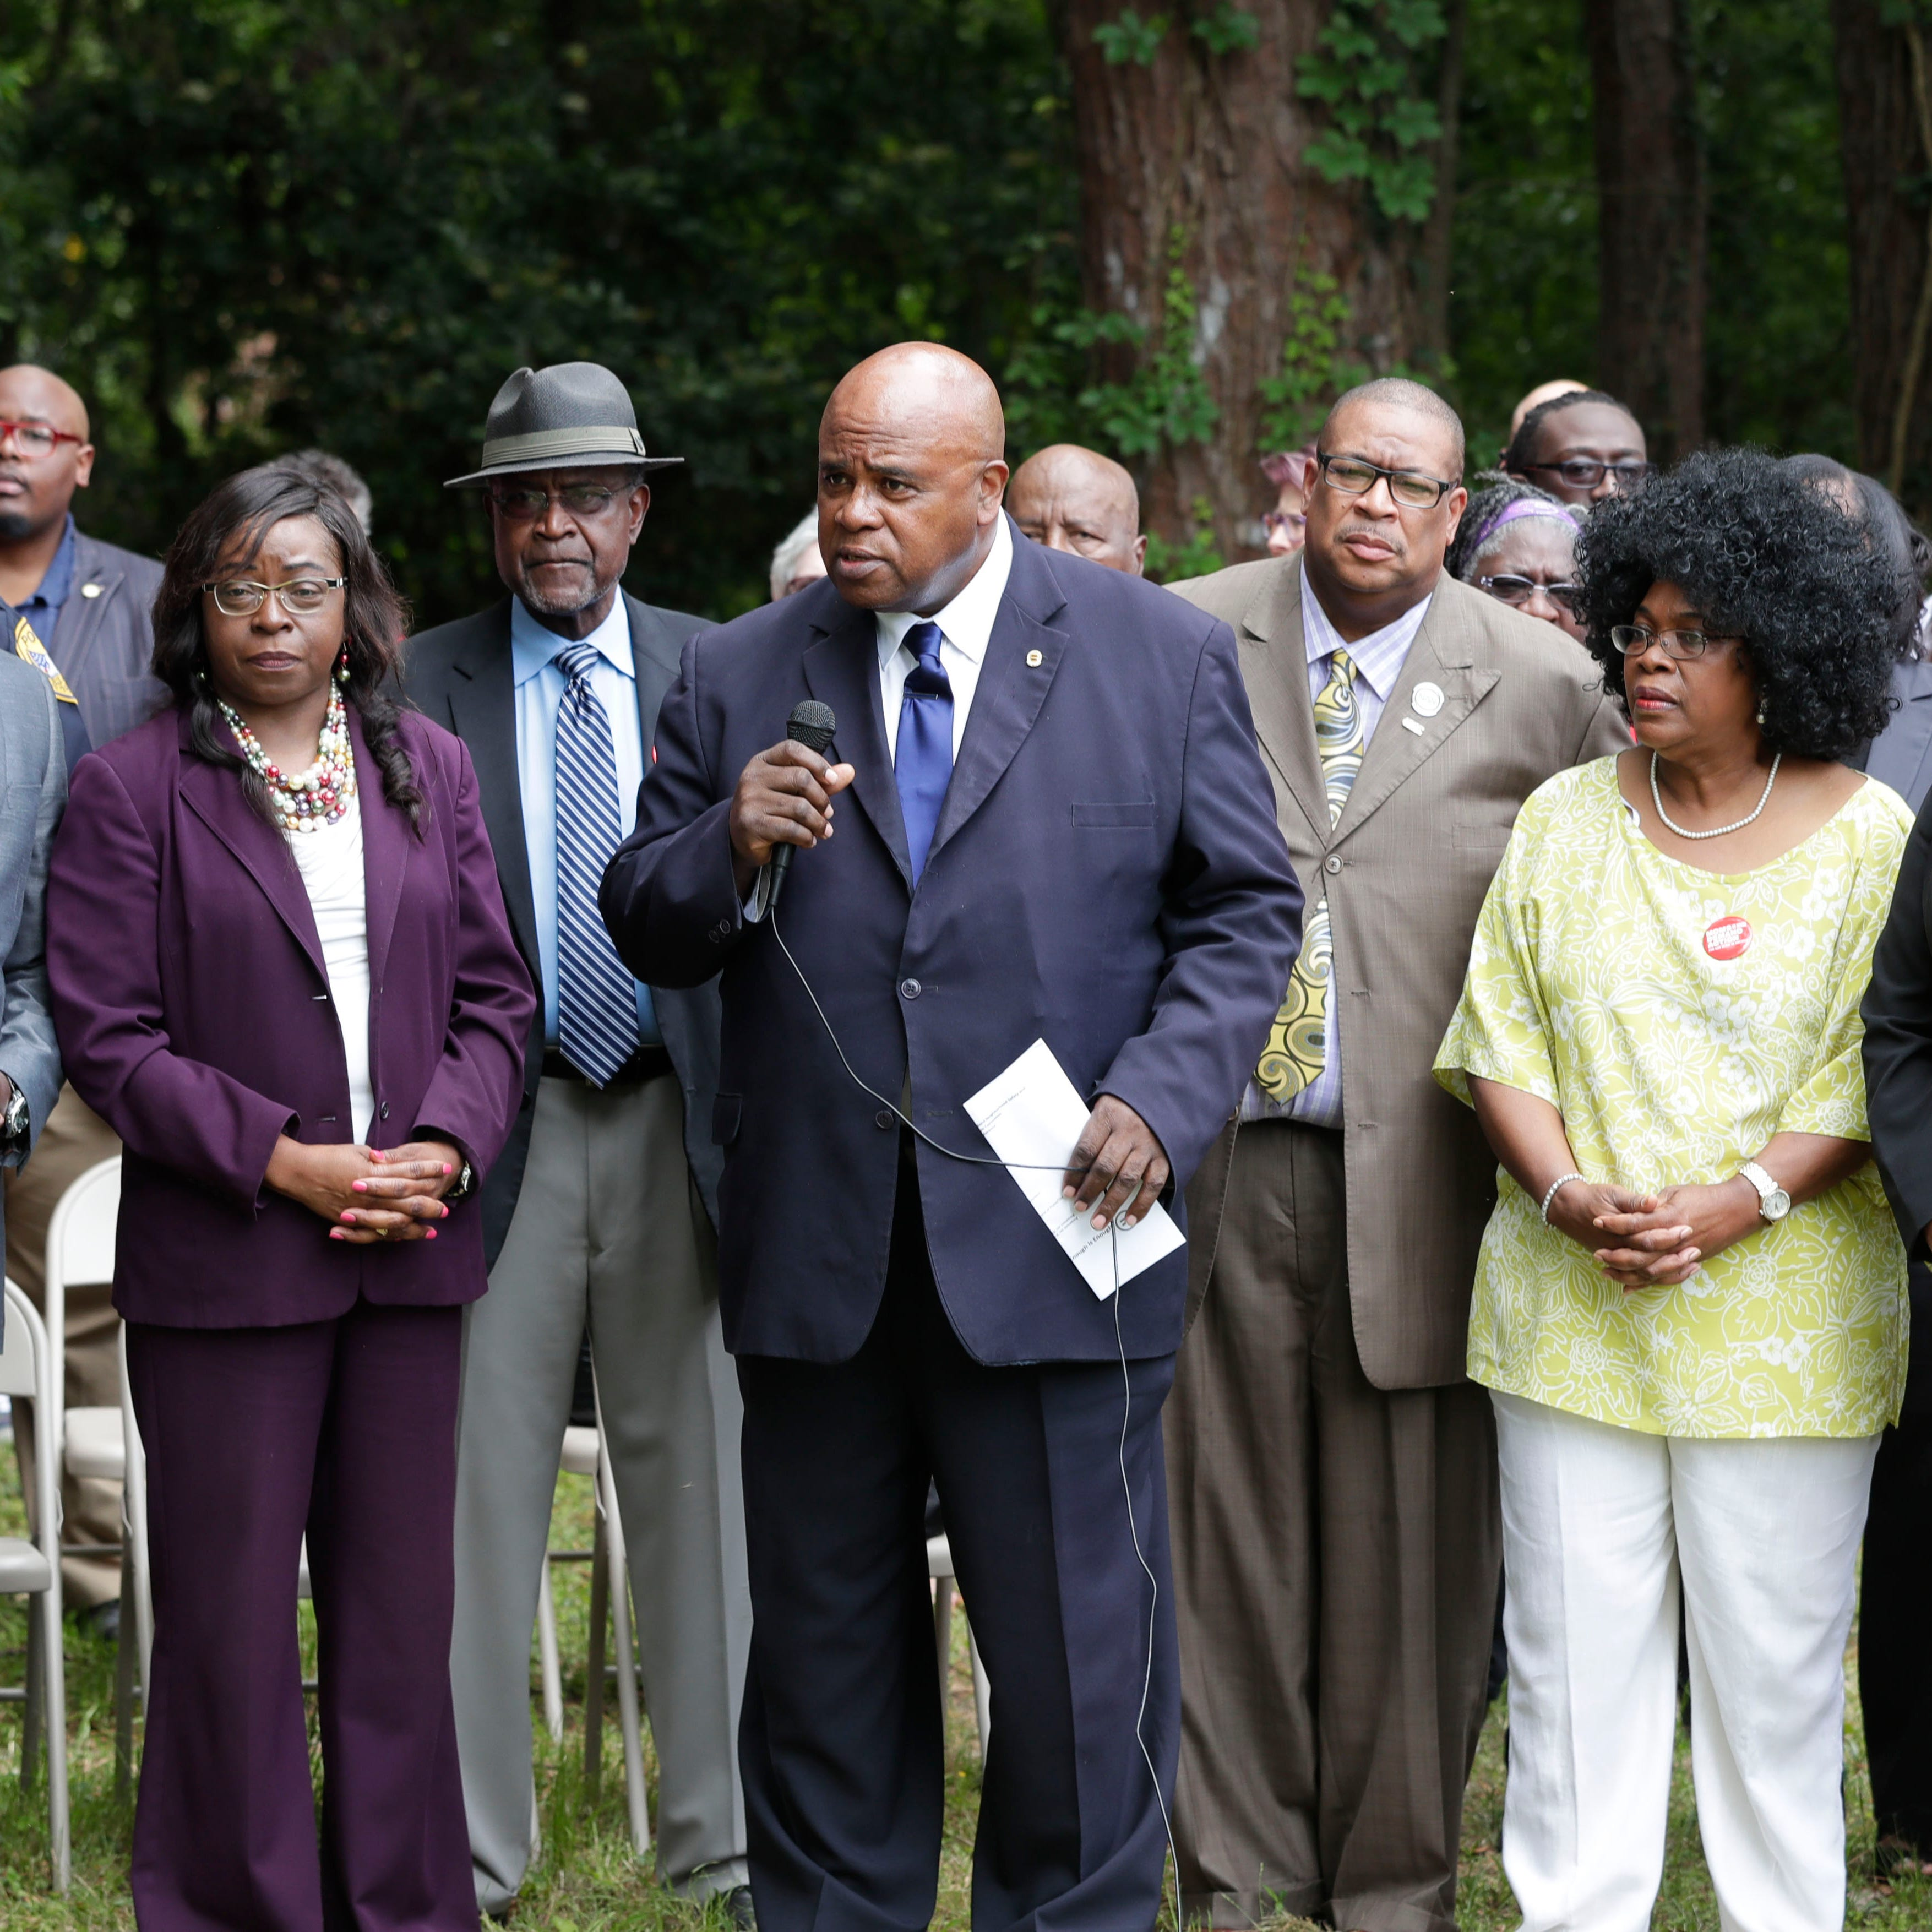 Amid rash of gun violence, city and community leaders say 'enough is enough'